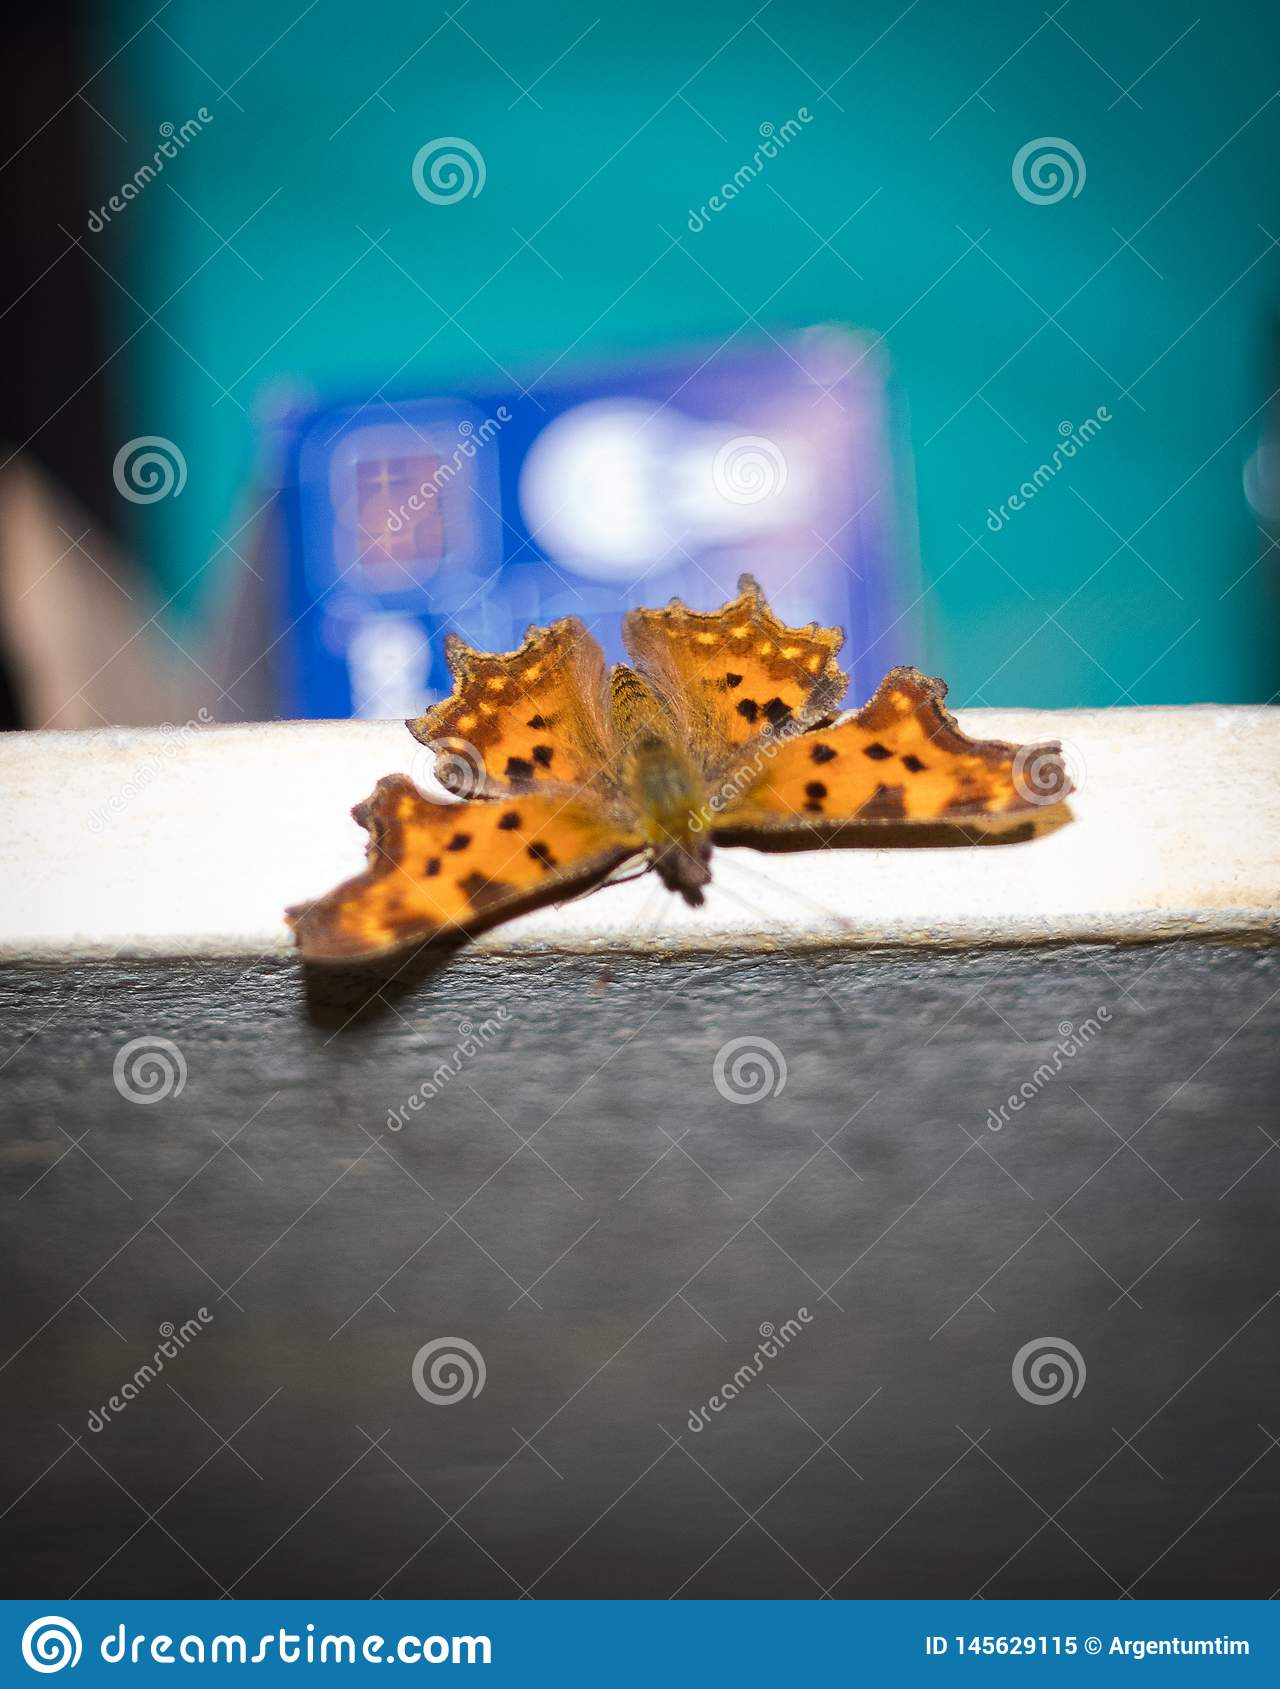 Orange spotted butterfly sitting on the furniture indoors